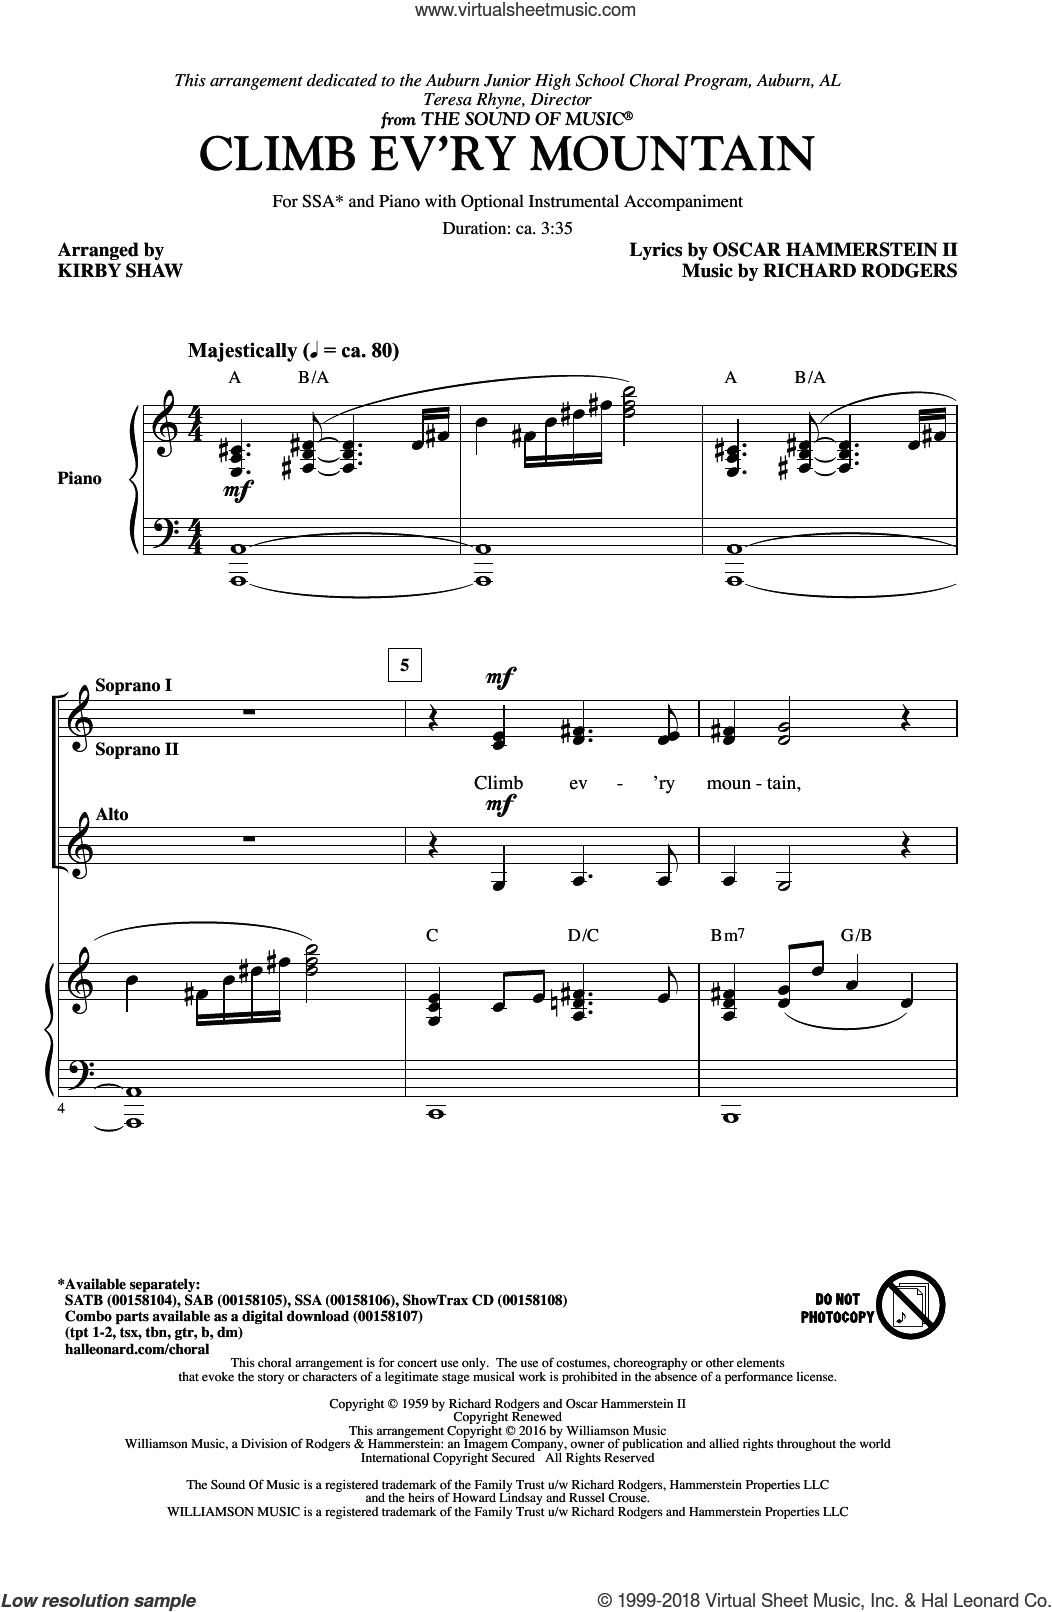 Climb Ev'ry Mountain sheet music for choir and piano (SSA) by Richard Rodgers